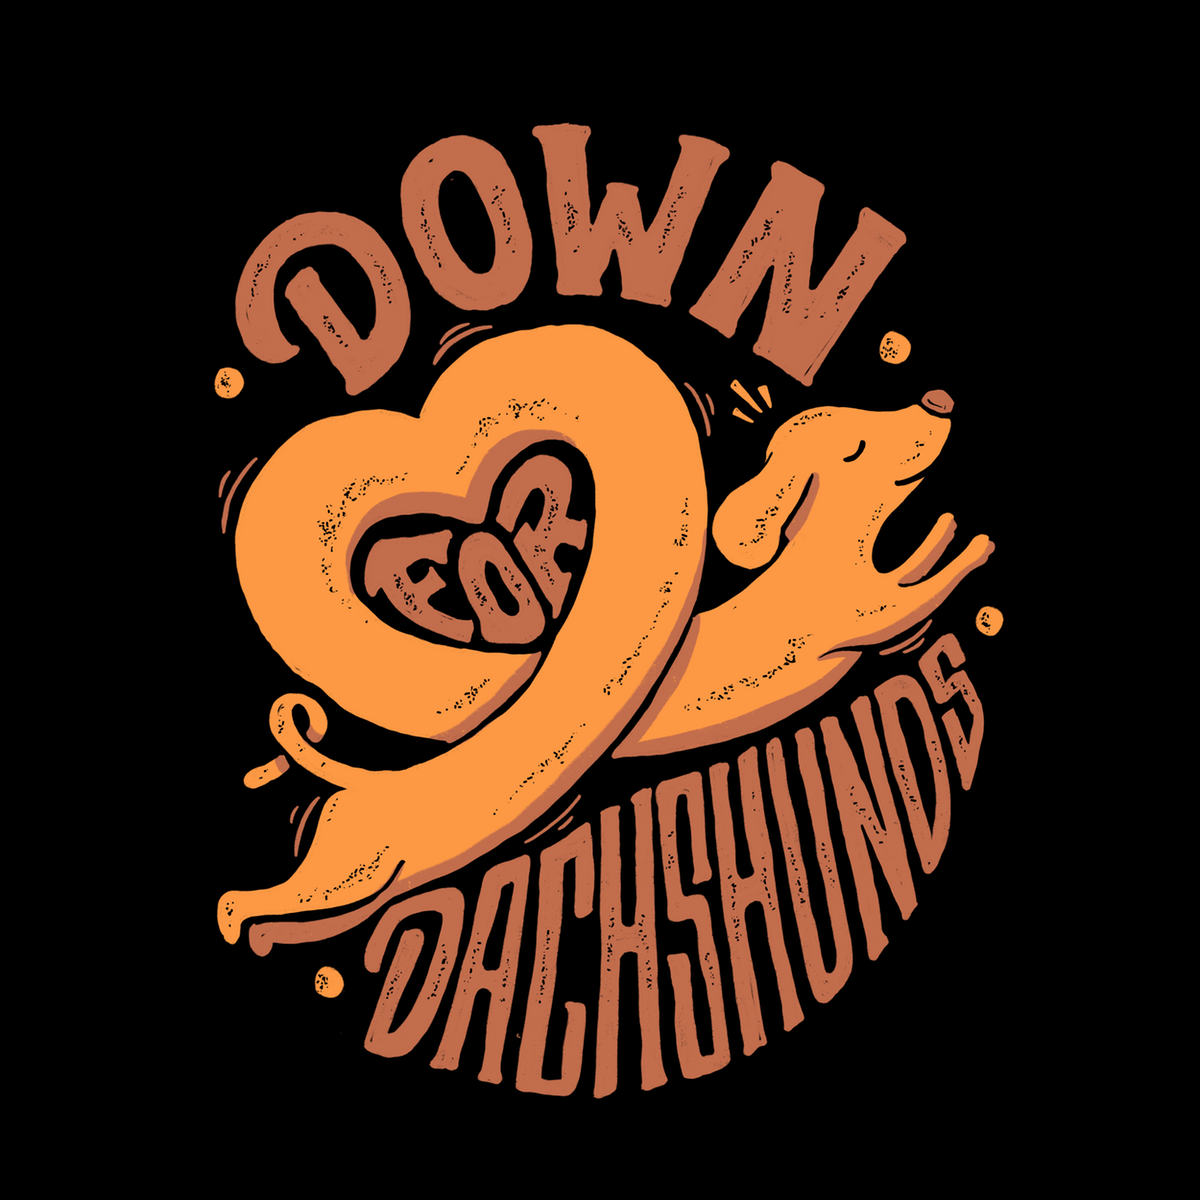 Down For Dachshunds